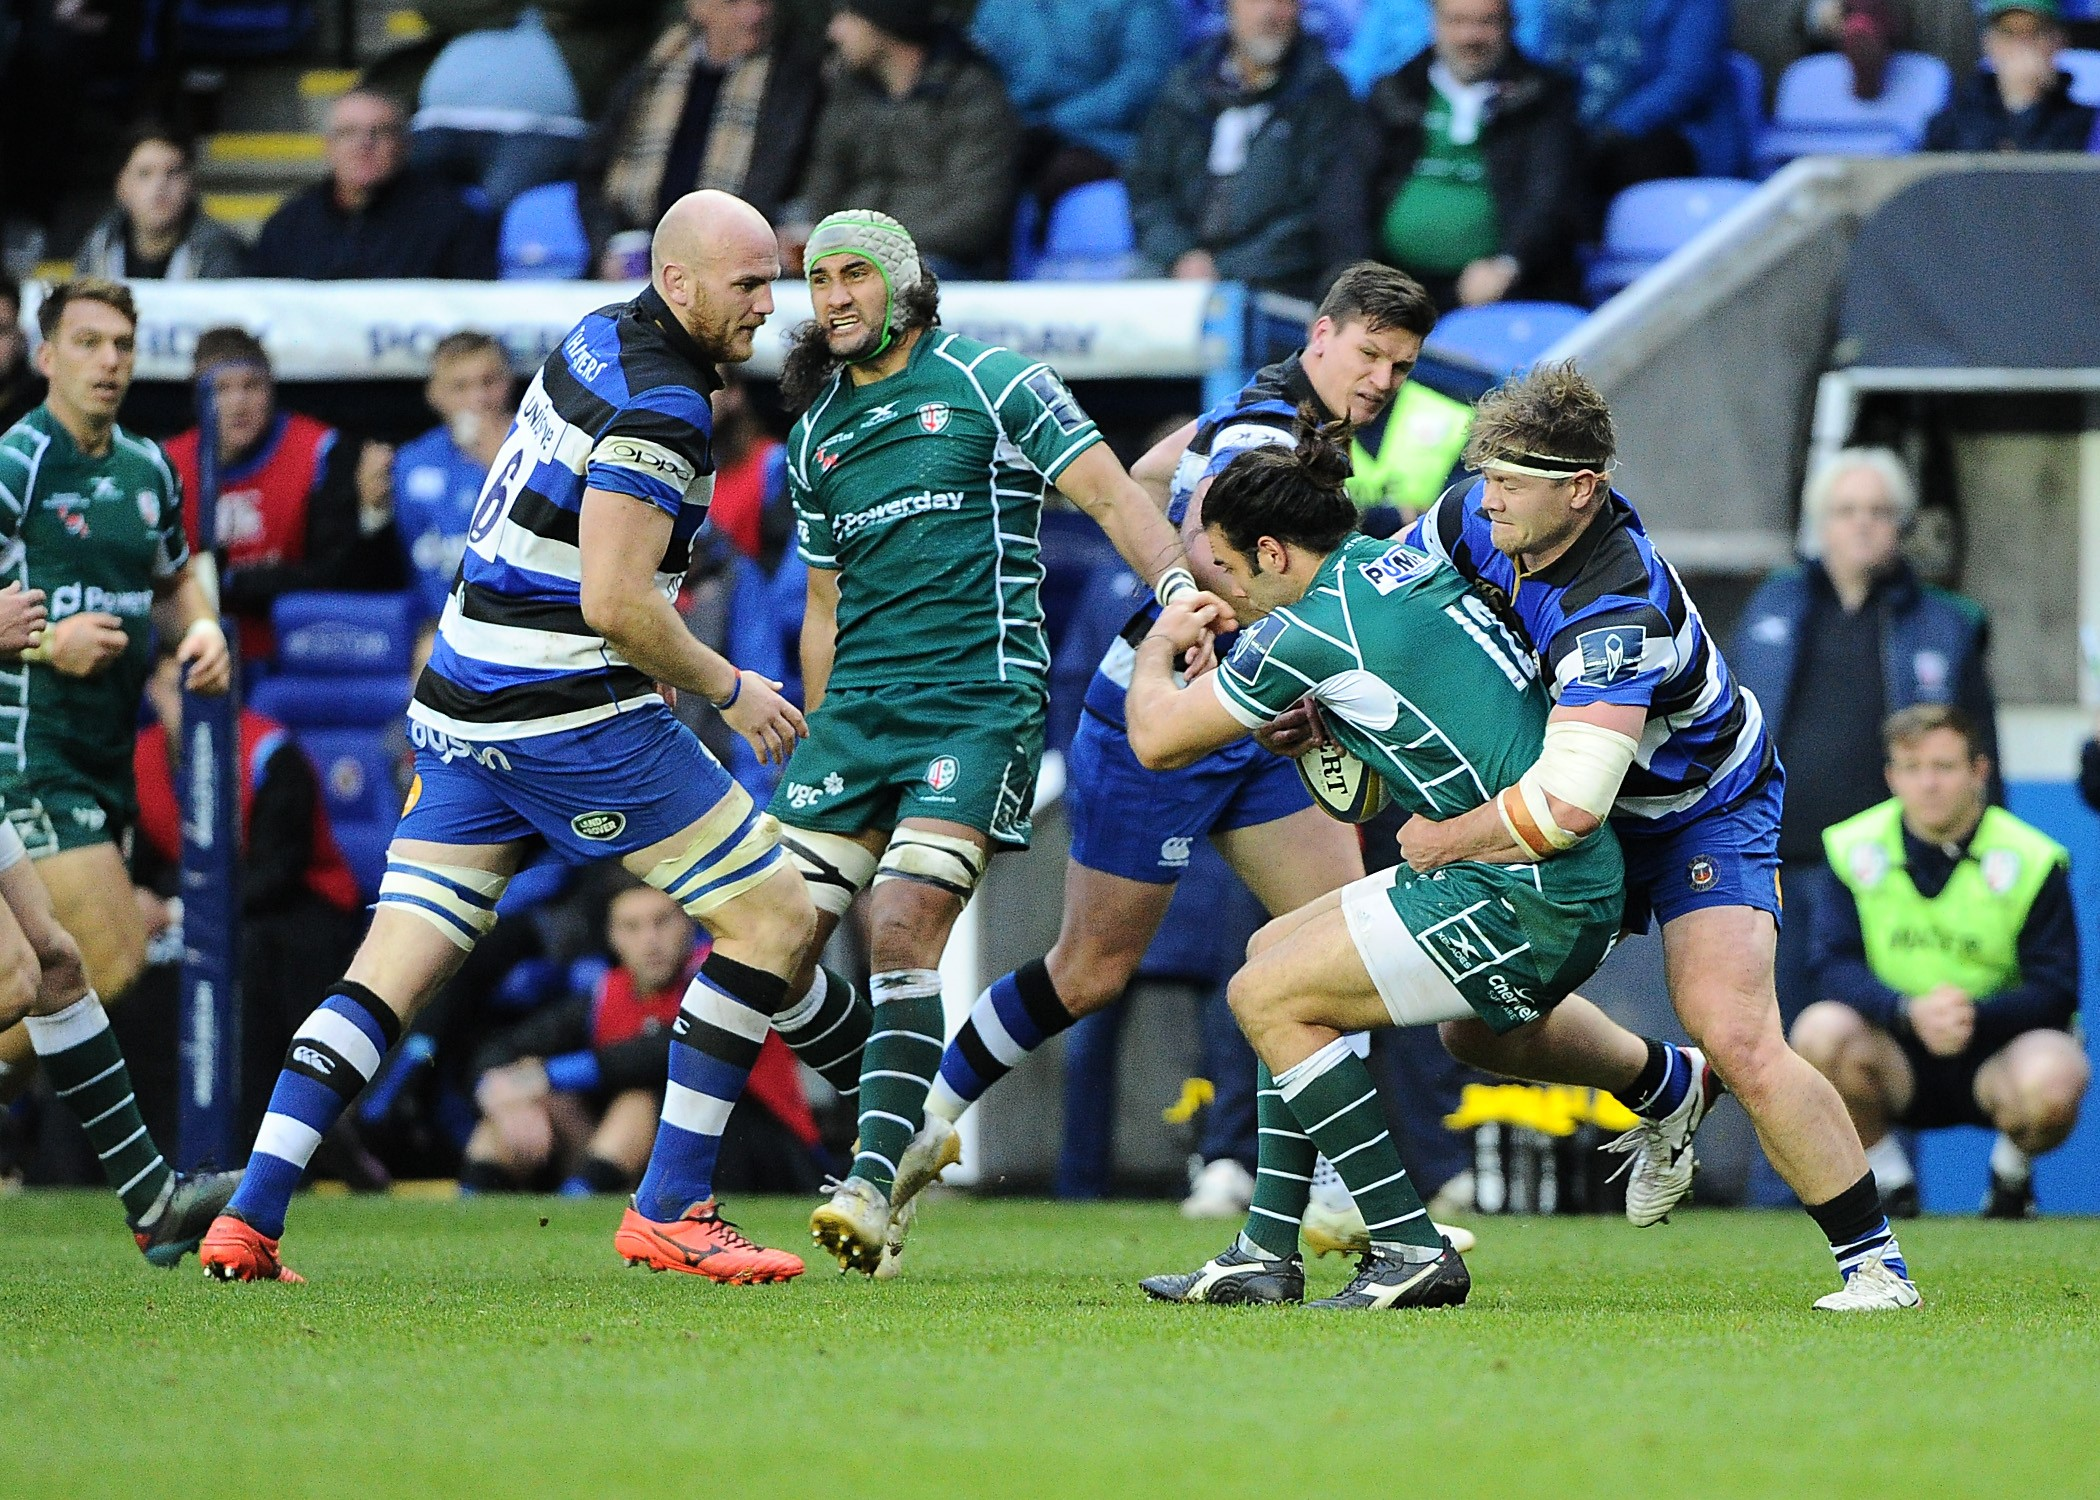 London Irish's Luke McLean is tackled against Bath  Picture by David M. Moore